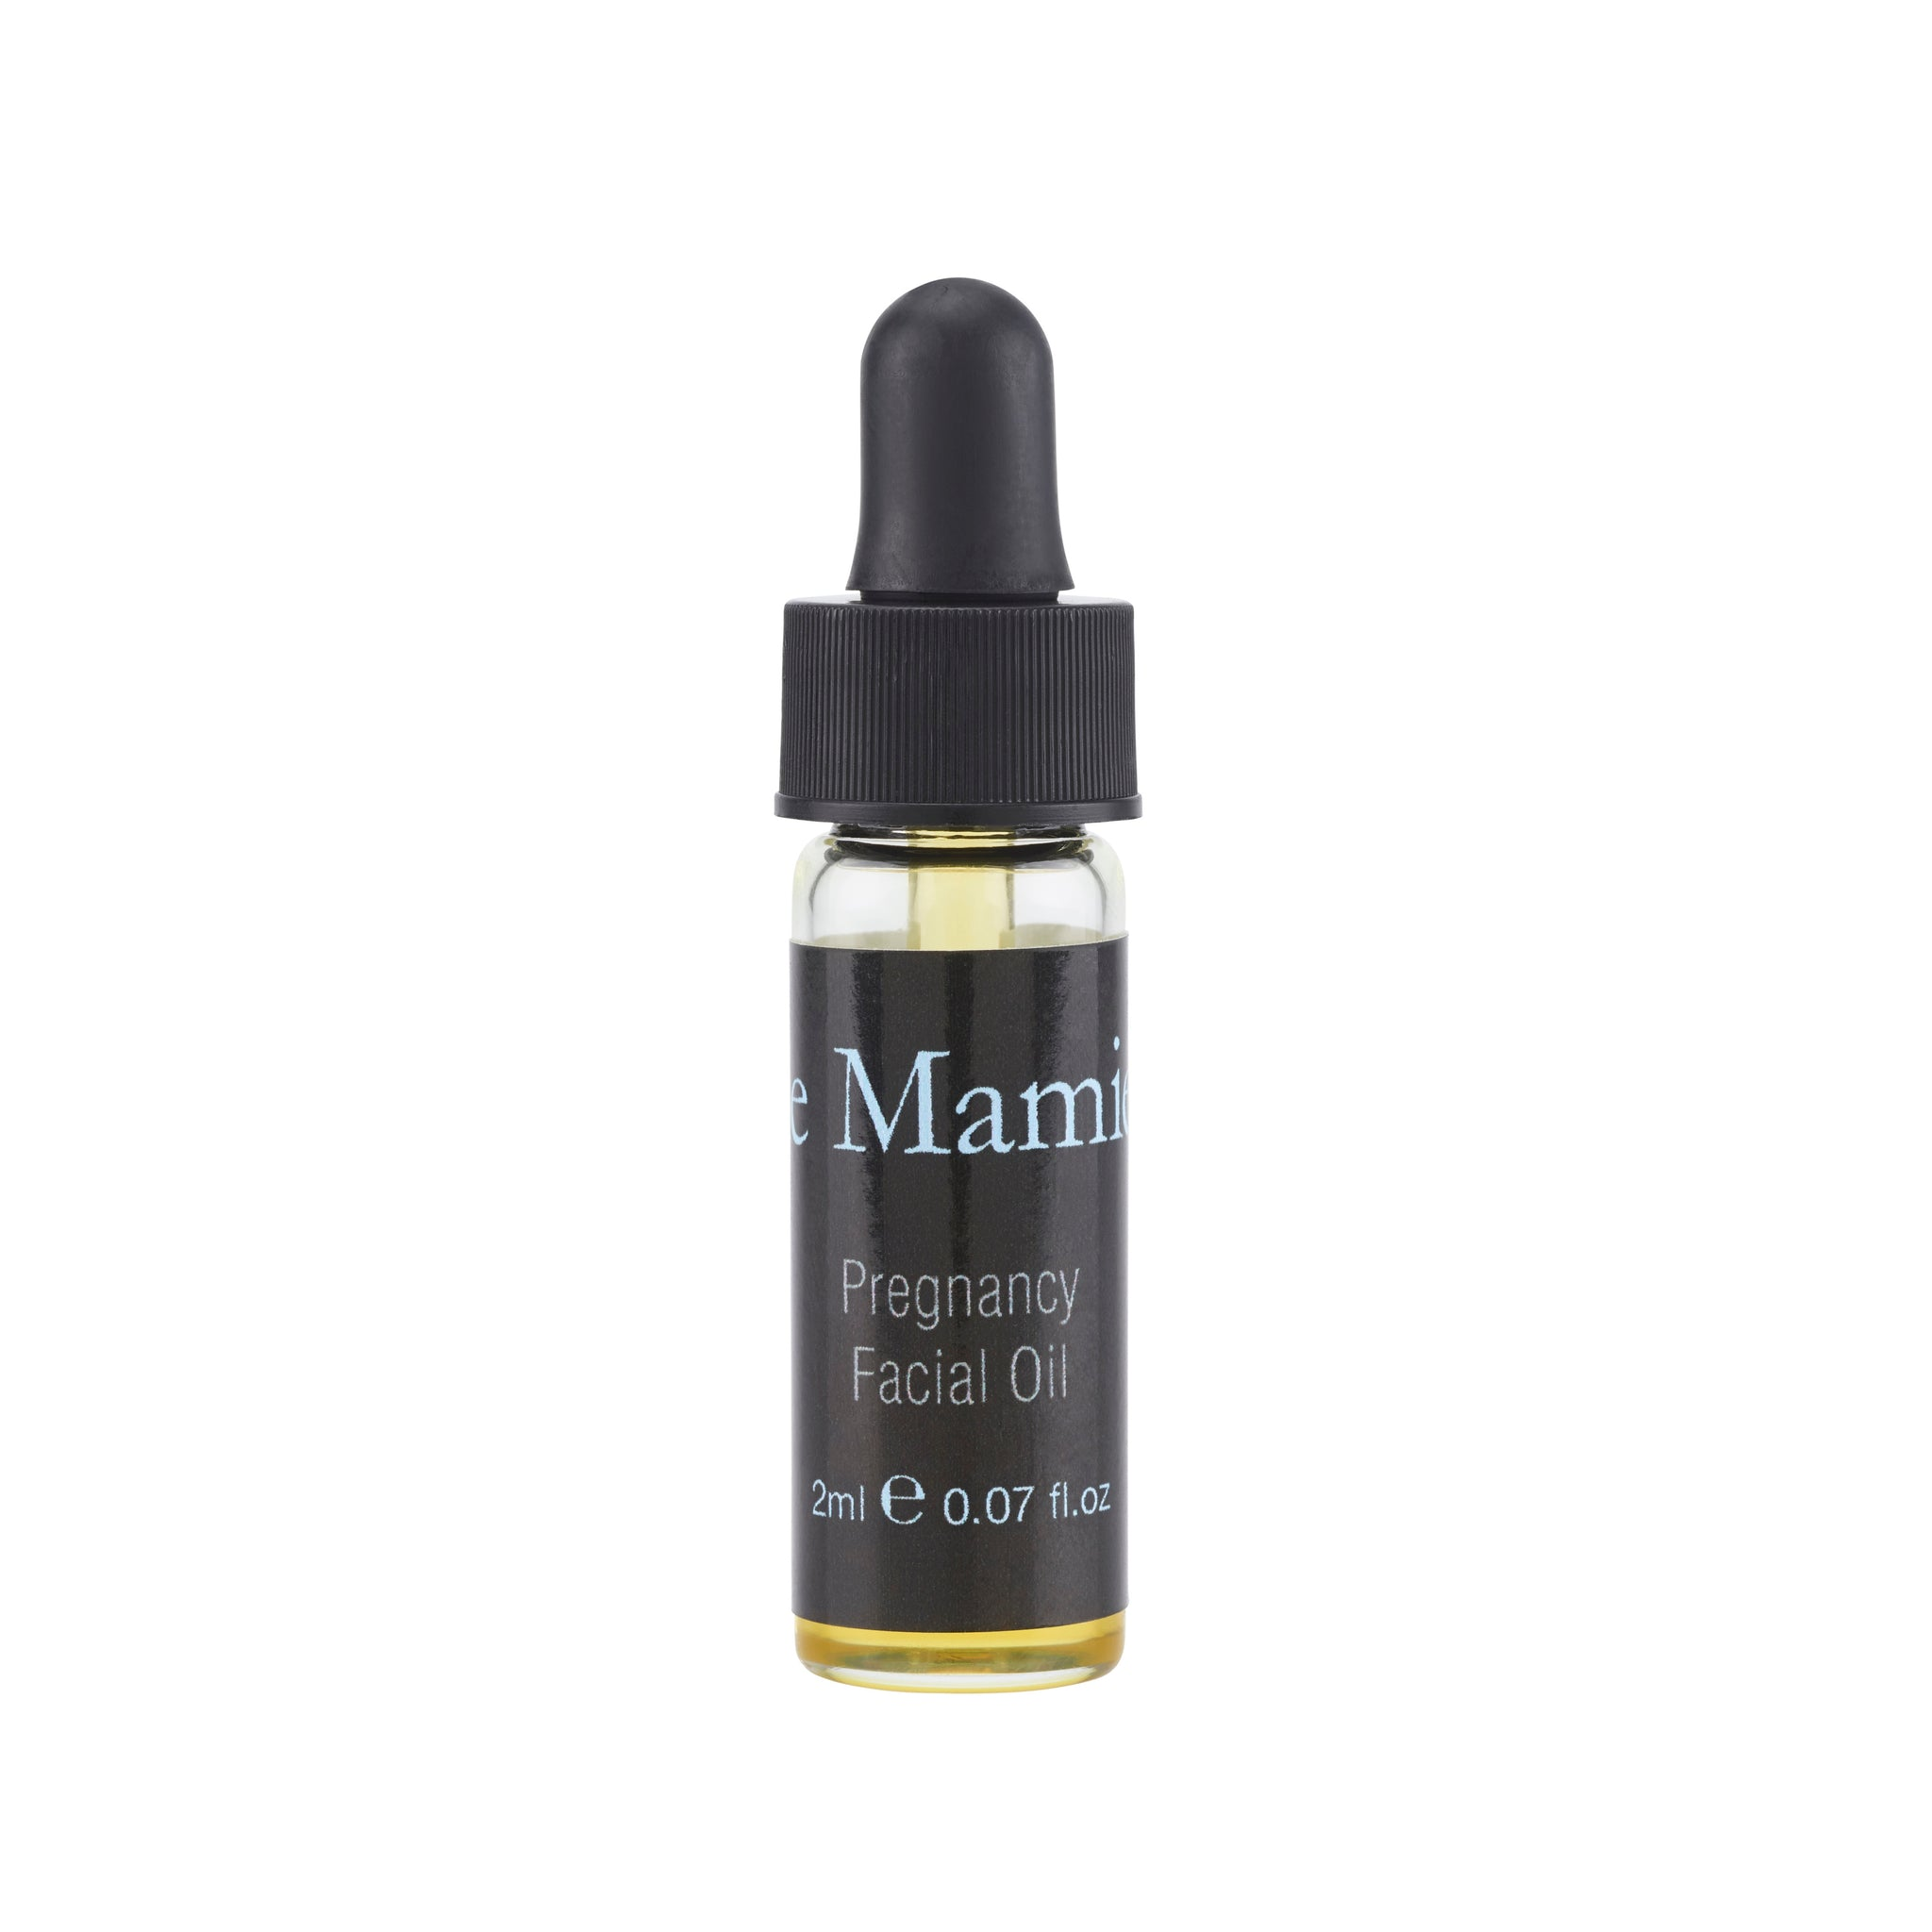 Pregnancy Facial Oil (2ml)